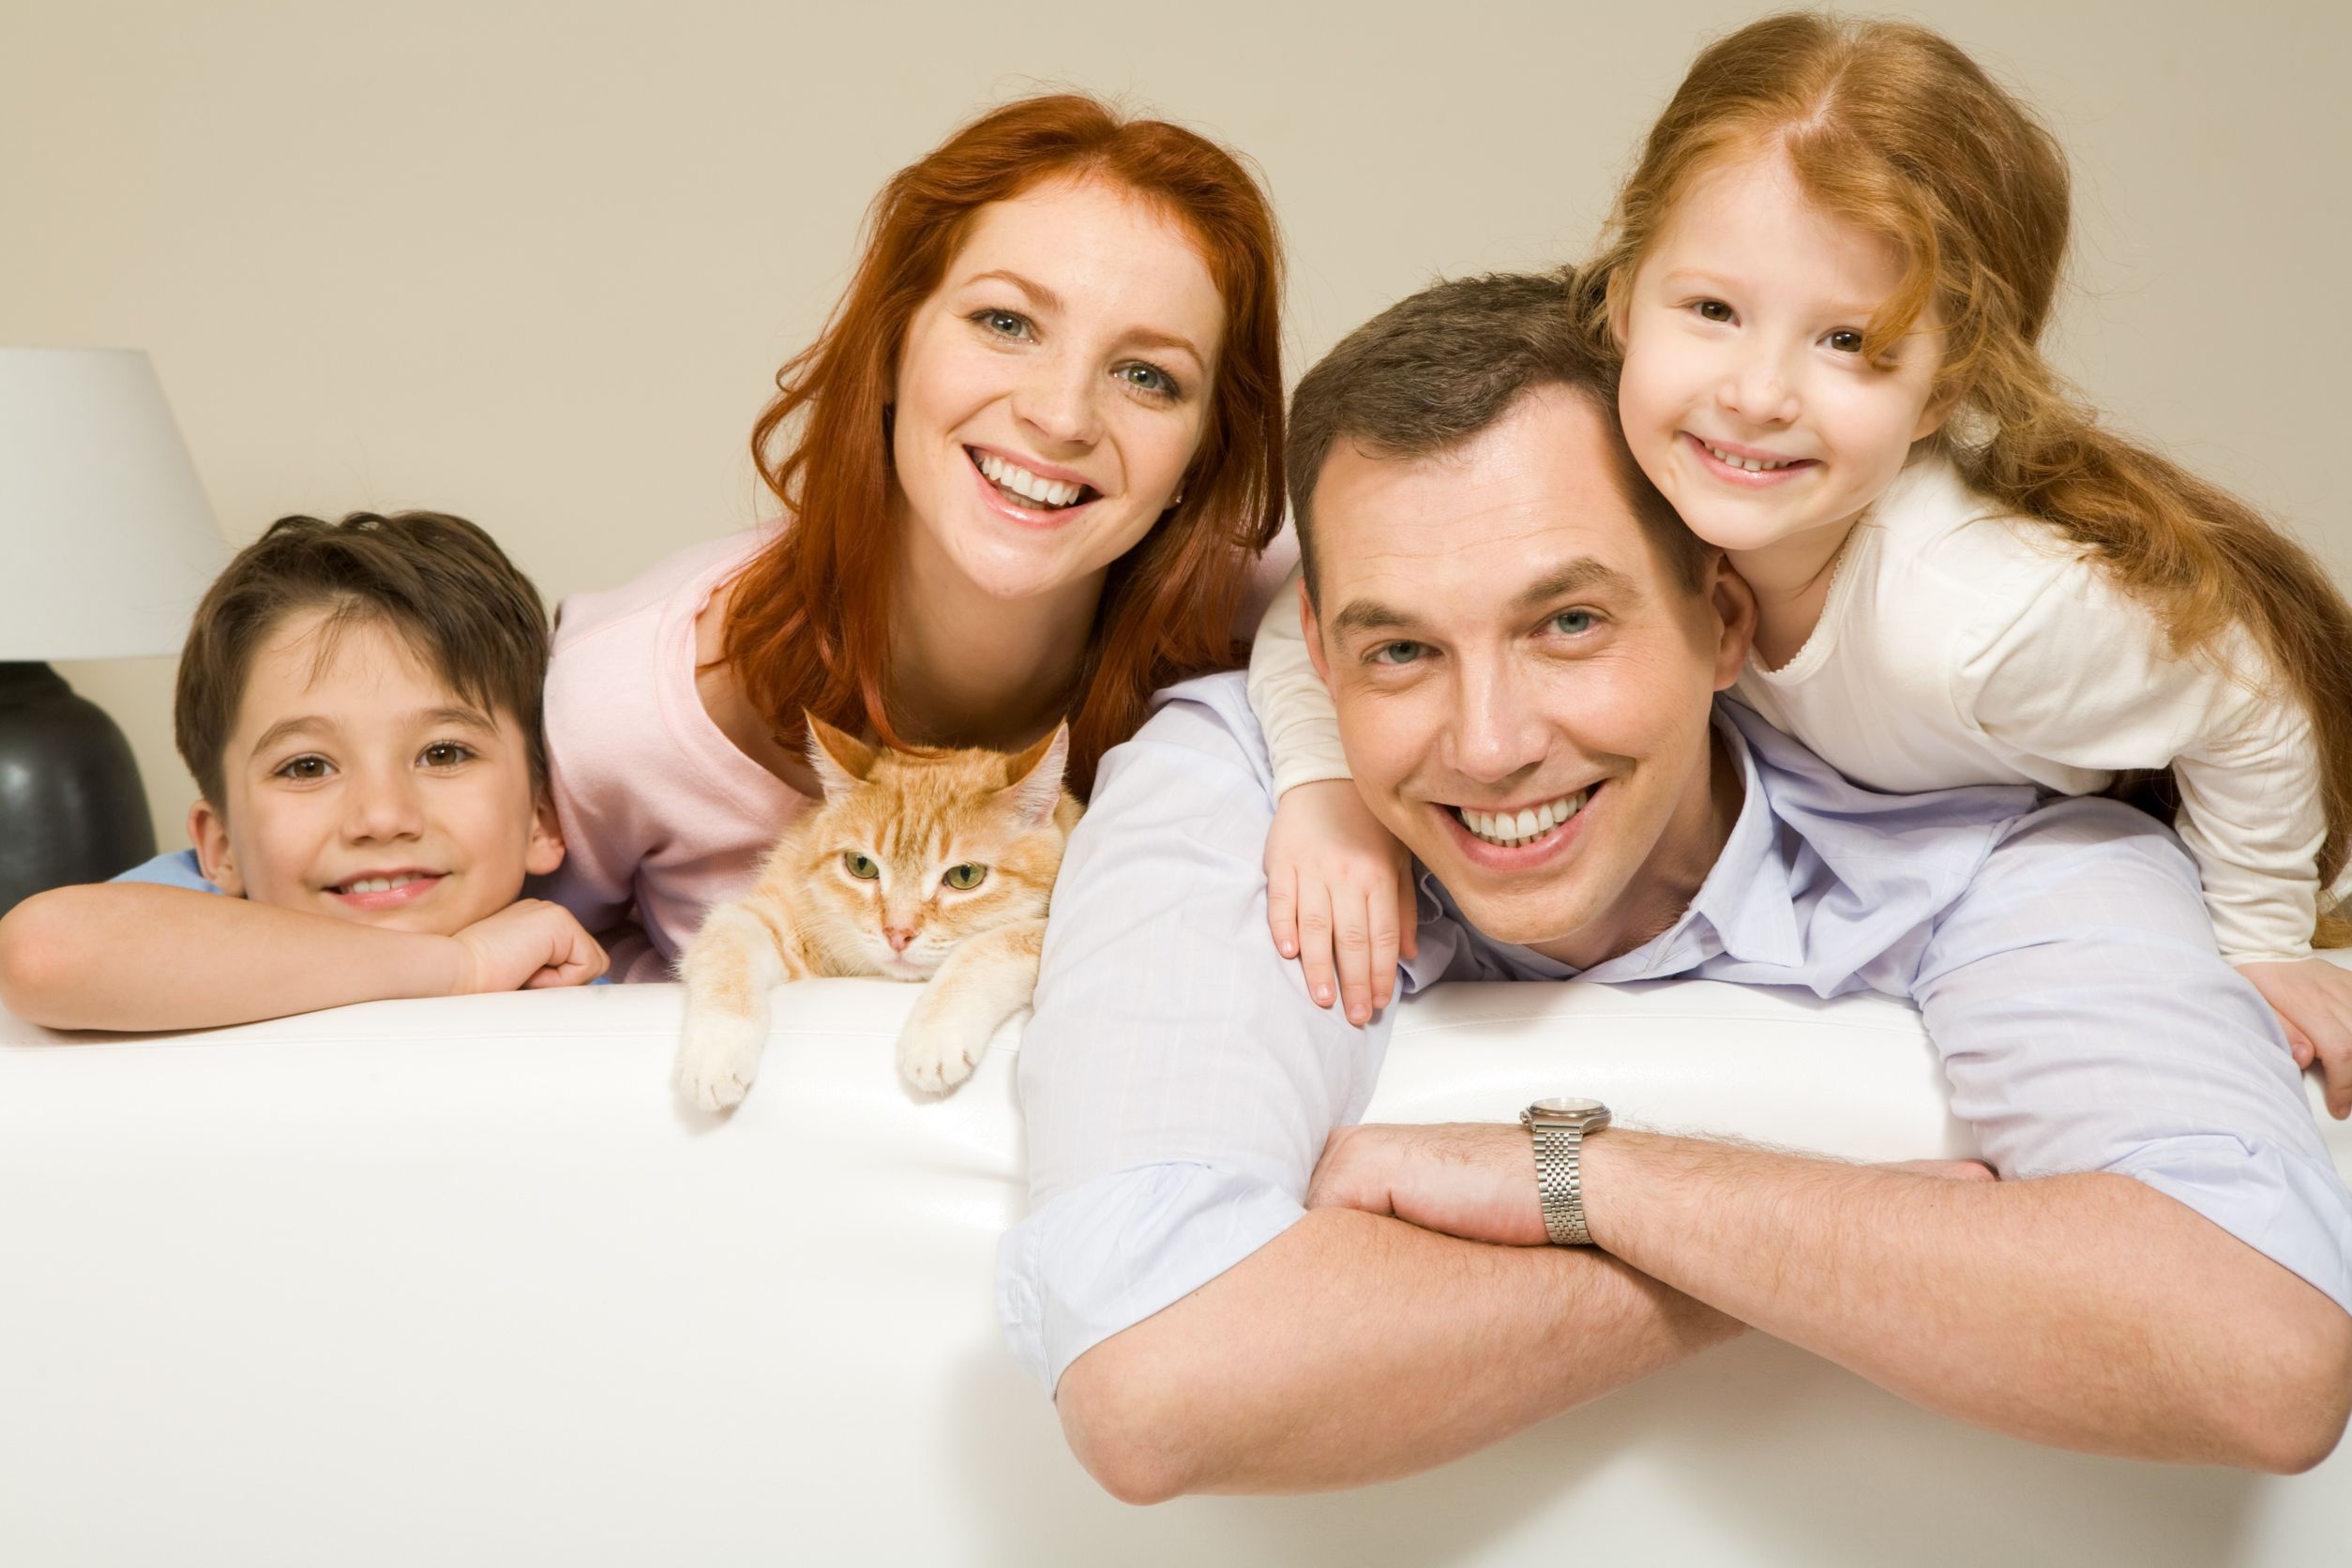 The whole family should maintain a positive attitude during life transitions to help kids cope.